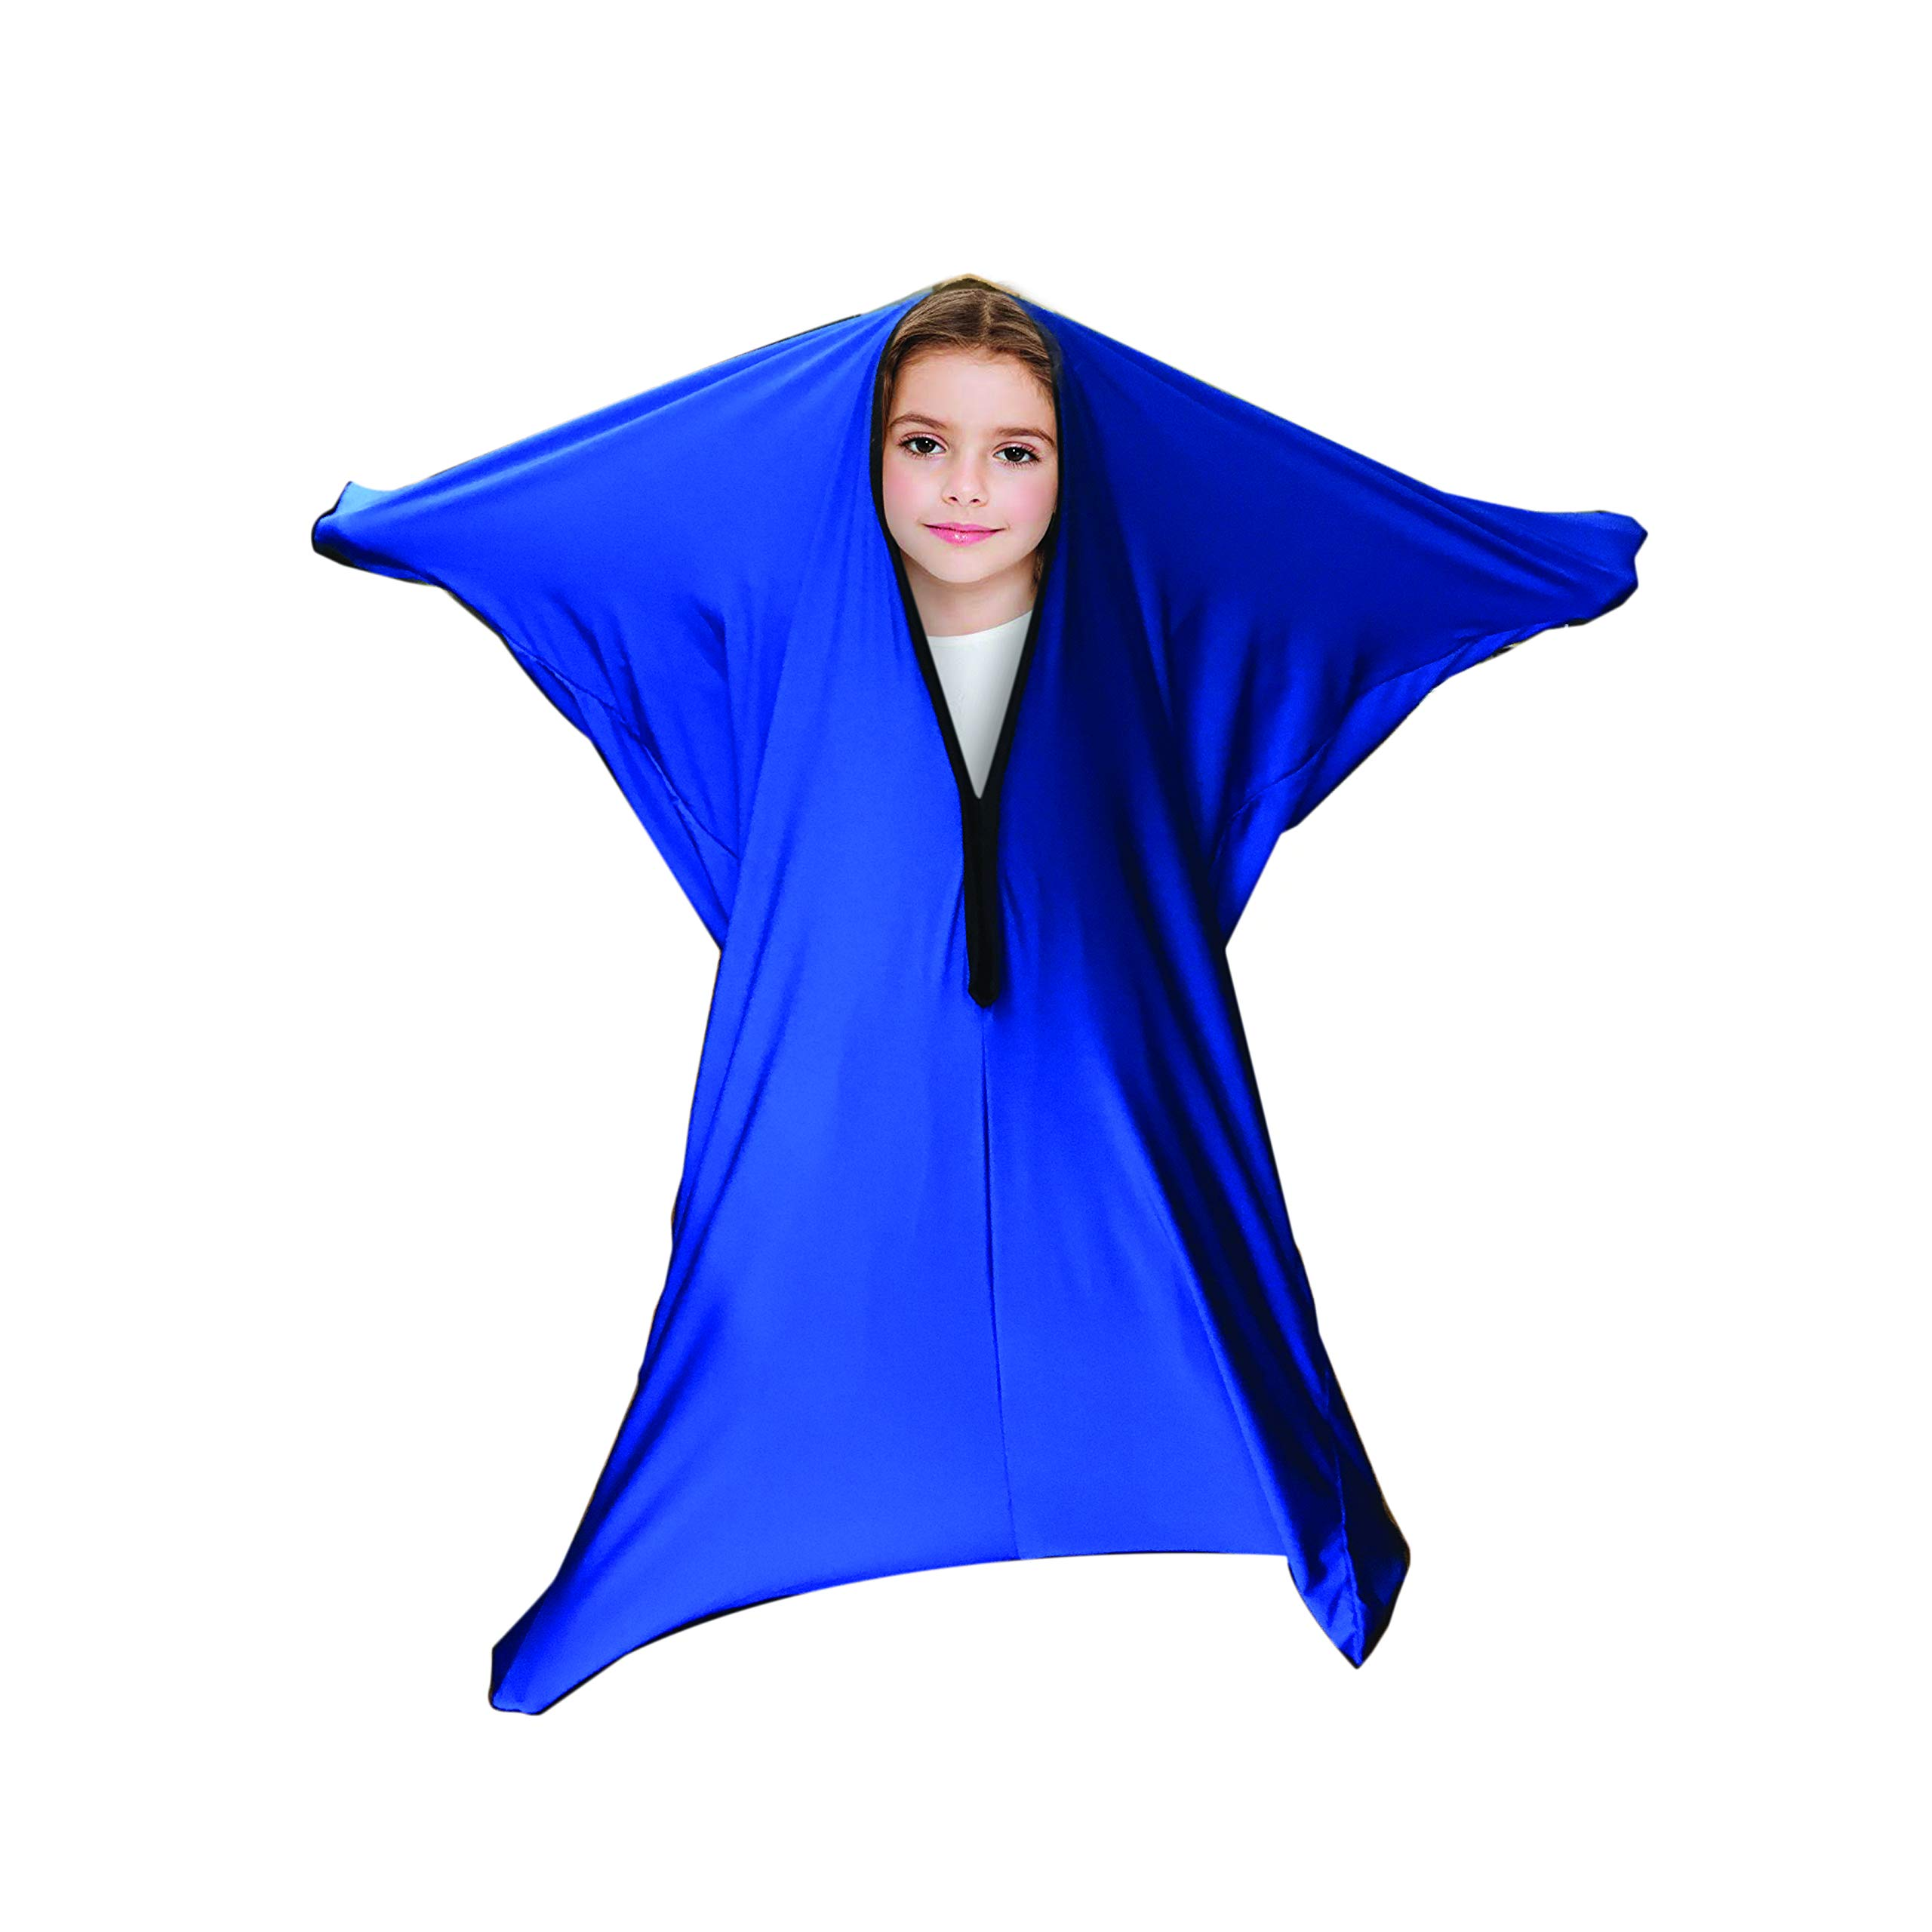 Colorscok Body Sock Sensory Sox - Deep Pressure Stimulation for Children with Sensory Proceessing Disorders, Blue